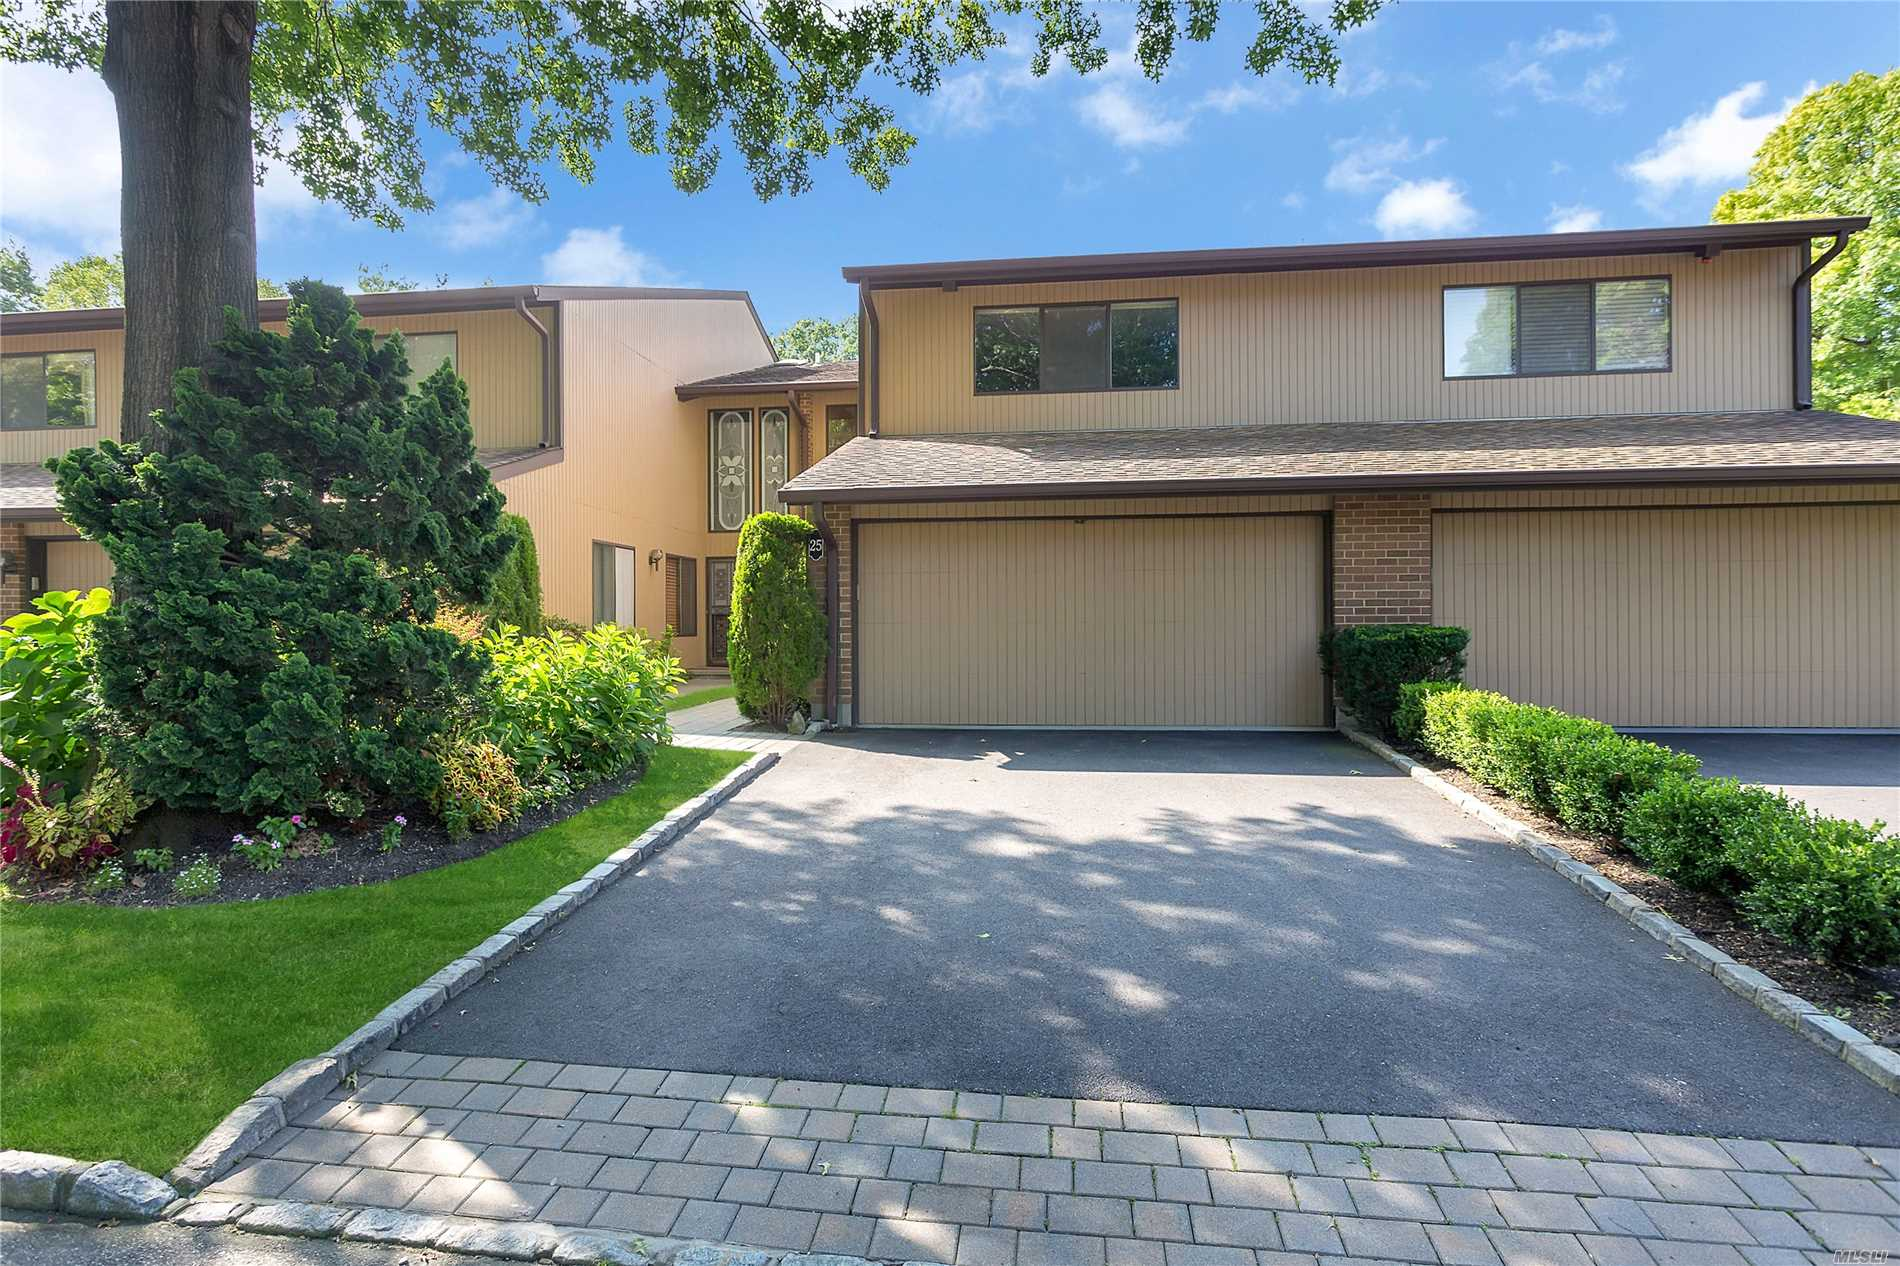 Beautifully maintained with an air of sophistication, this sunny three-bedroom, two-and-a-half-bath, Berkshire model, Imperial Gardens townhome has much to offer. Located in North Hills, it is convenient to premier shopping and dining, golf, boating, renowned hospitals, major arteries and train station, and is within easy reach of Manhattan and major airports. Its community amenities include an inground pool with large patio and a tennis court.  Passing lovely plantings and magnificent trees, the front walk leads into a sunny entrance foyer with contemporary wood staircase, entrance door with soaring side and transom lights, and an attractive powder room. To the right, a sparkling and cheery kitchen features a sunny breakfast area and white cabinetry enfolding stainless steel appliances including a French-door refrigerator with in-door ice and water. Enjoy access to the attached two-car garage from the kitchen. An L-shaped great room offers easy flow from the dining area, through the living room, with sliding glass doors to the charming rear deck, and into an inviting den with fireplace and wet bar. A bright and spacious master suite on the second floor features a generous bedroom with walk-in closets and a roomy sky-lit master bath with twin console vanities, a soaking tub, and a glass-enclosed shower with seat. A lovely hall bath, access to laundry, and two additional bedrooms, one serving as a study with built-in bookcases, complete this level. With great amenities and an ideal location, this pristine home is a perfect opportunity for those seeking an easy commute to the city or perhaps looking to downsize.